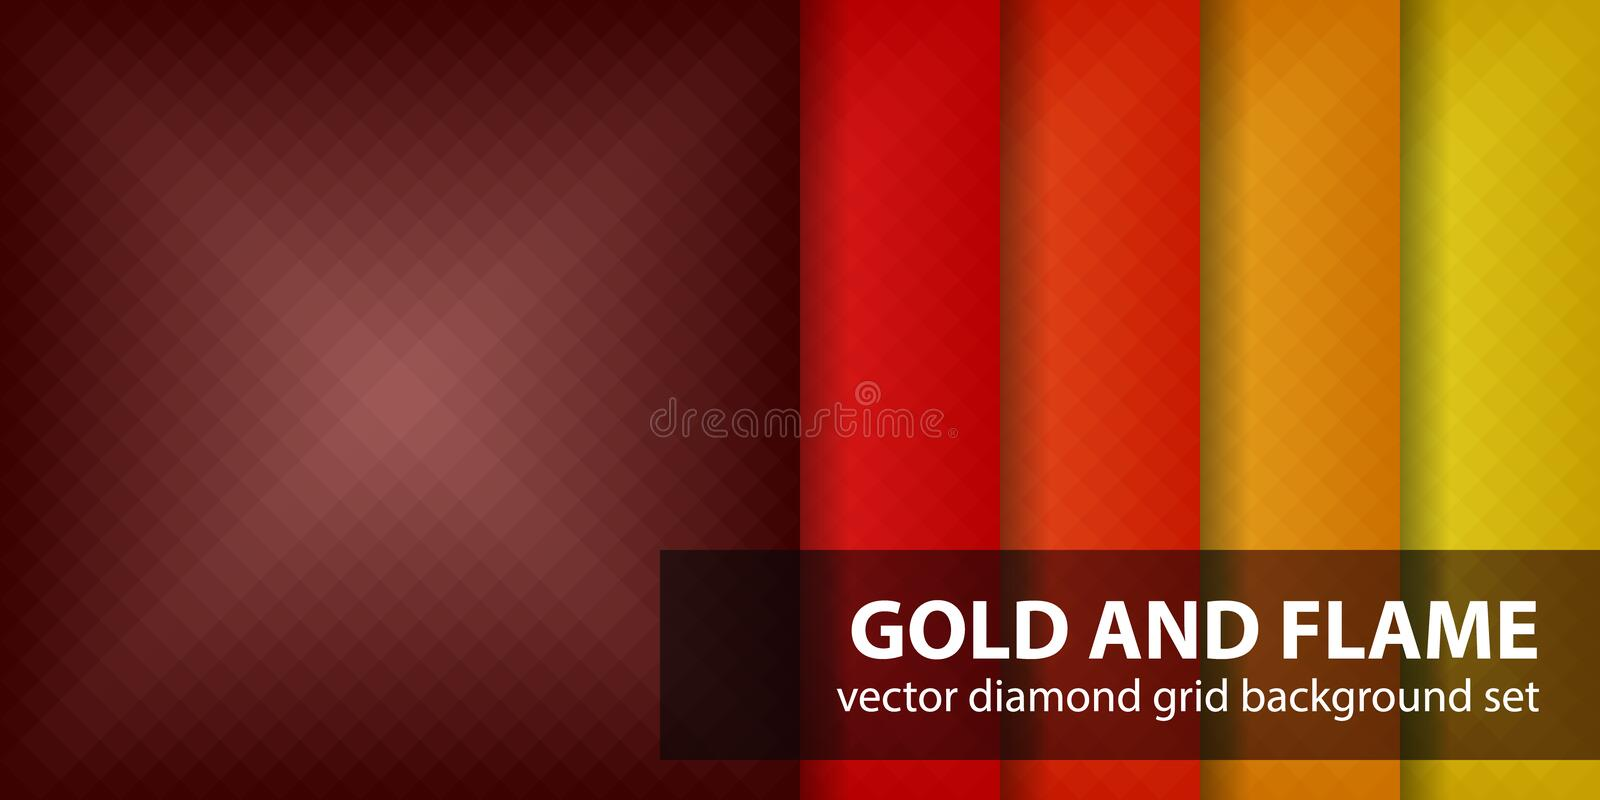 Diamond pattern set Gold and Flame vector illustration